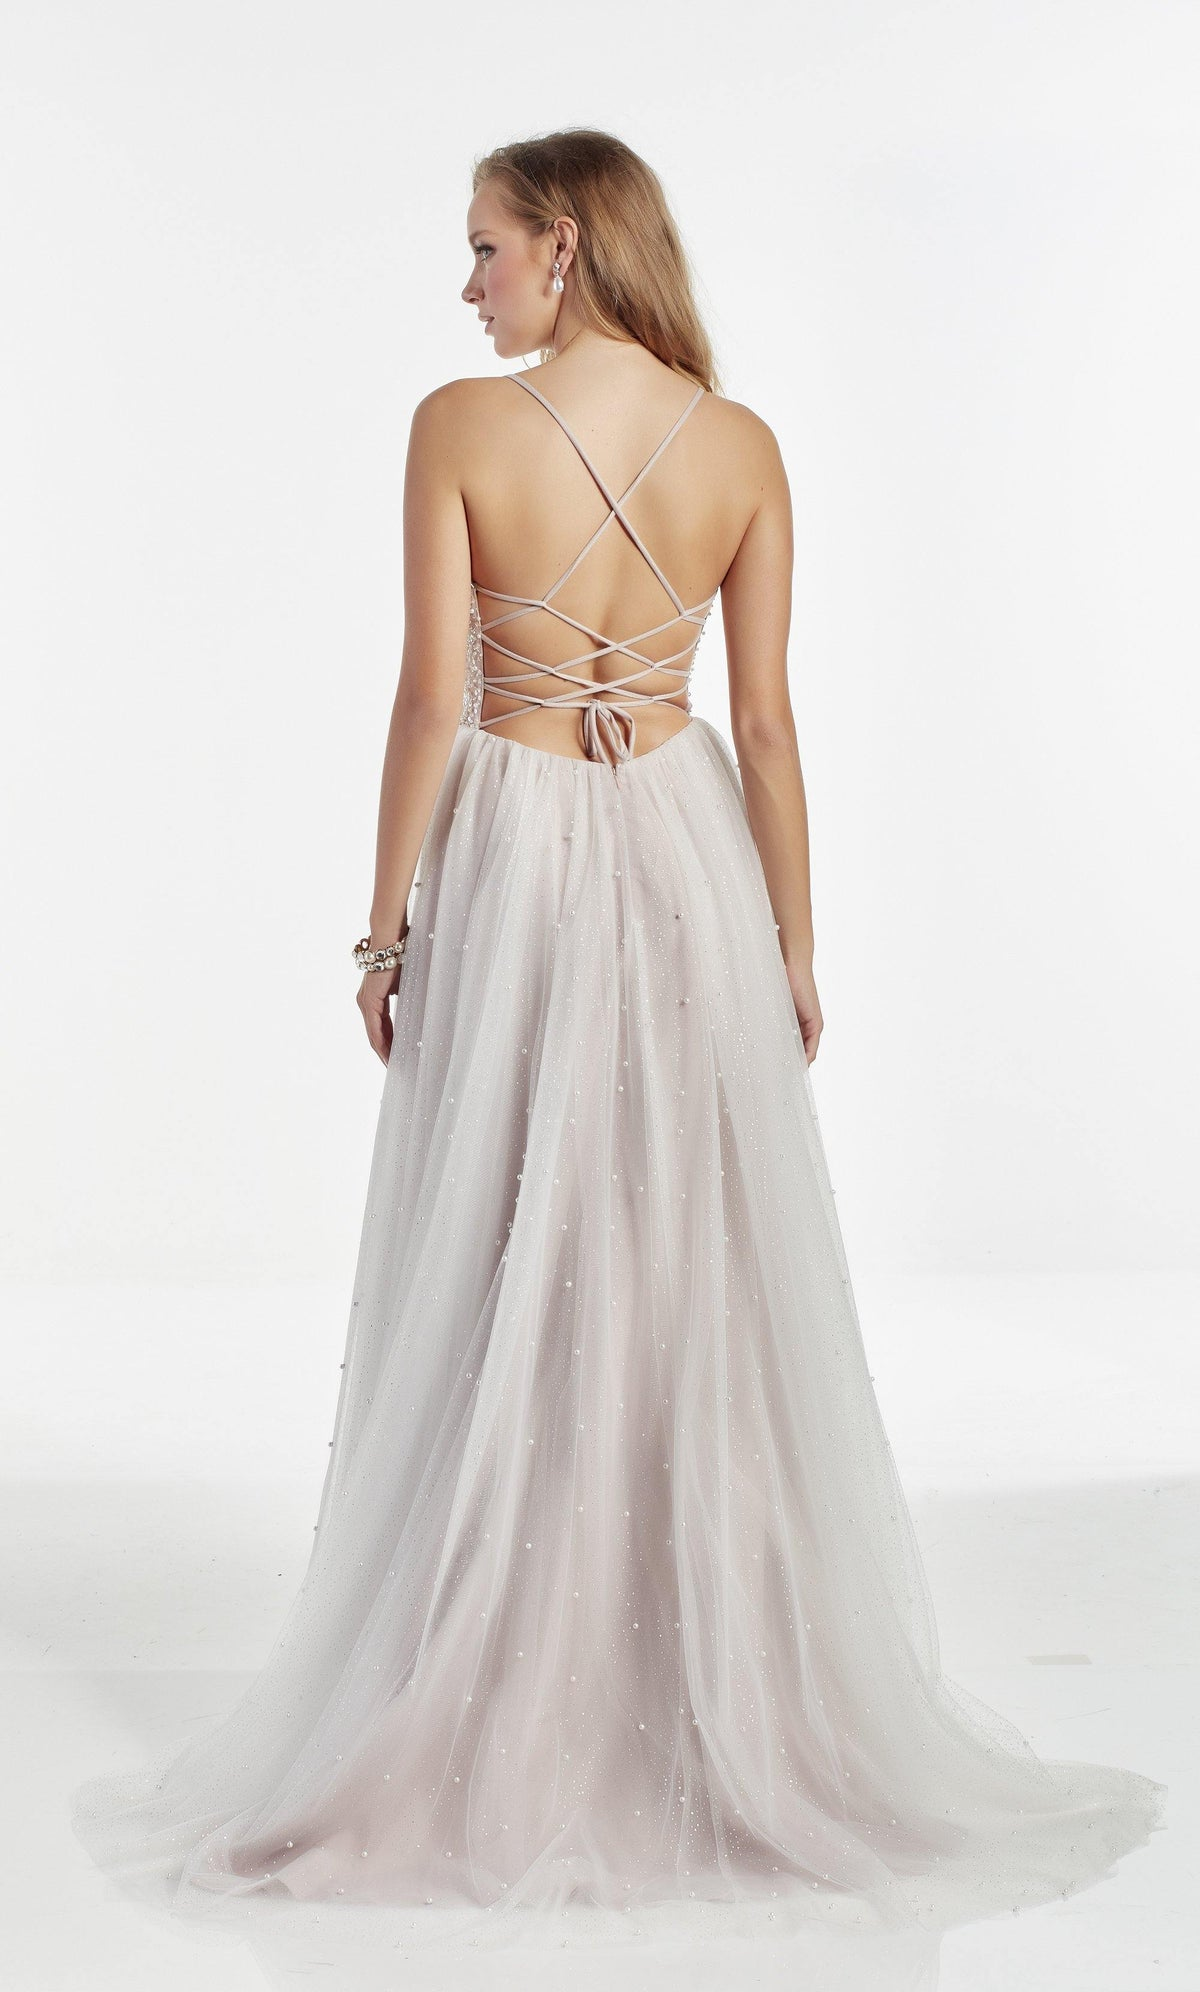 Diamond White-Rose fully embellished formal dress with a strappy back and train